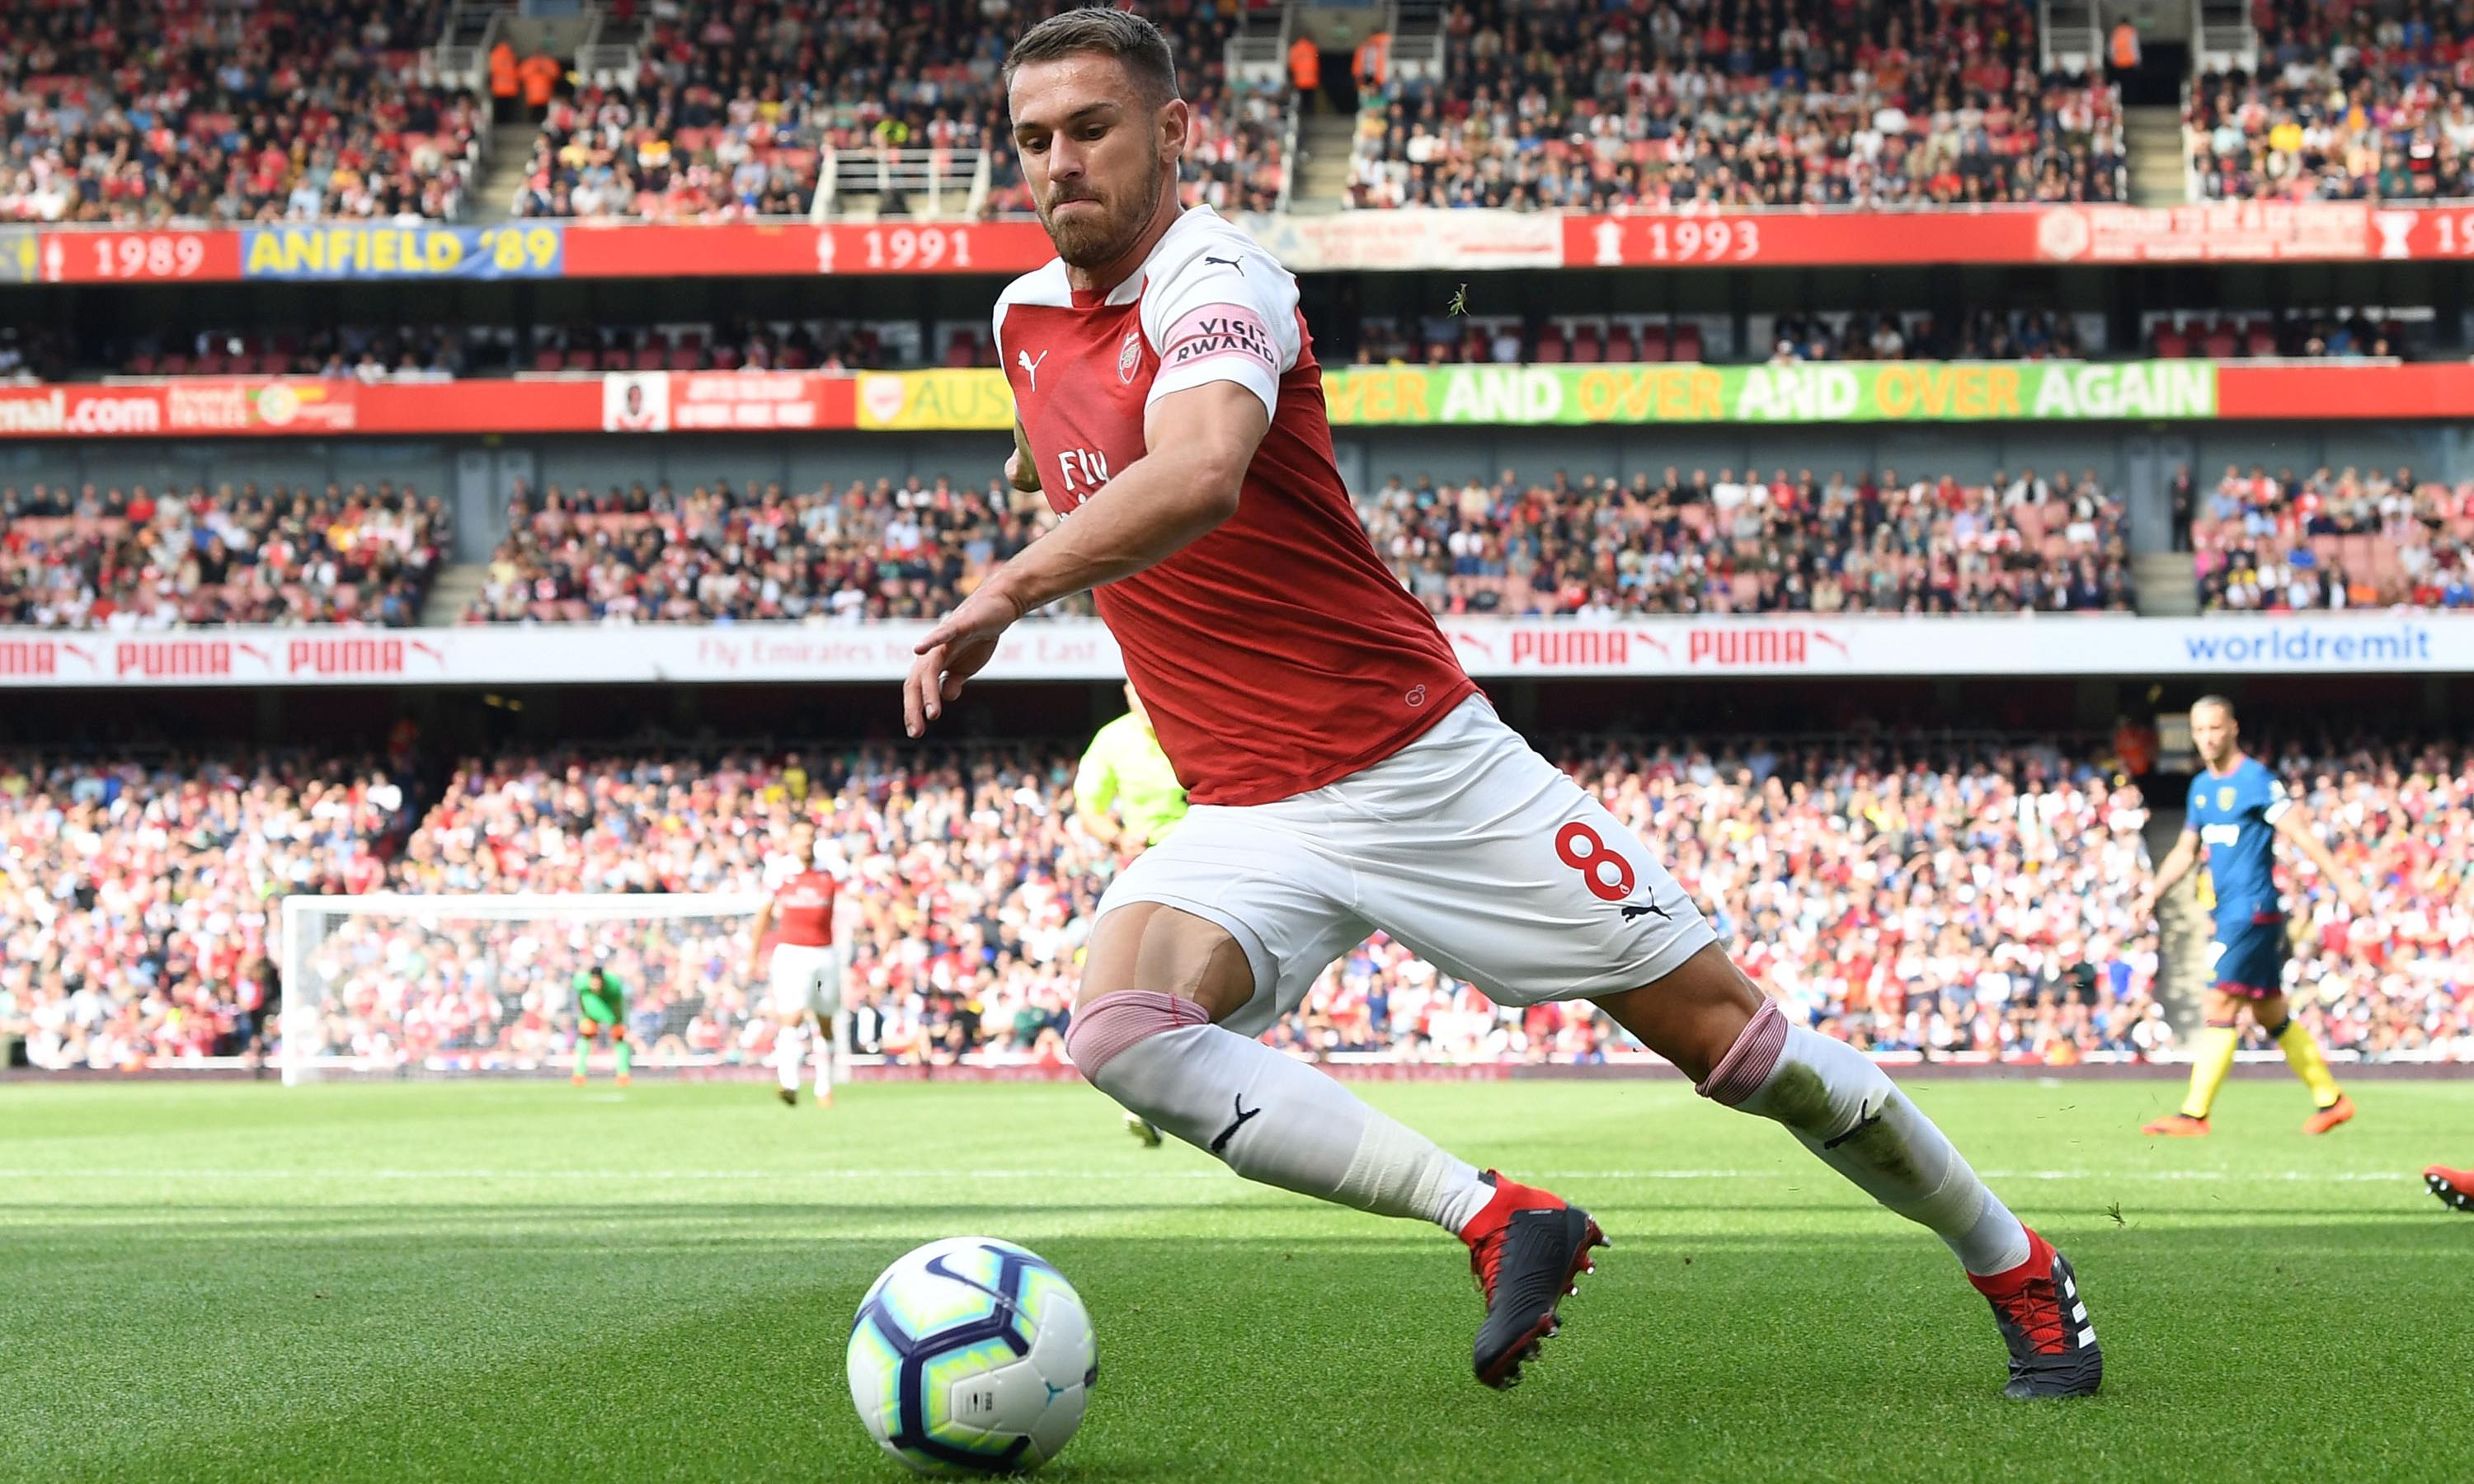 Aaron Ramsey will follow in the footsteps of greatness by moving to Juventus